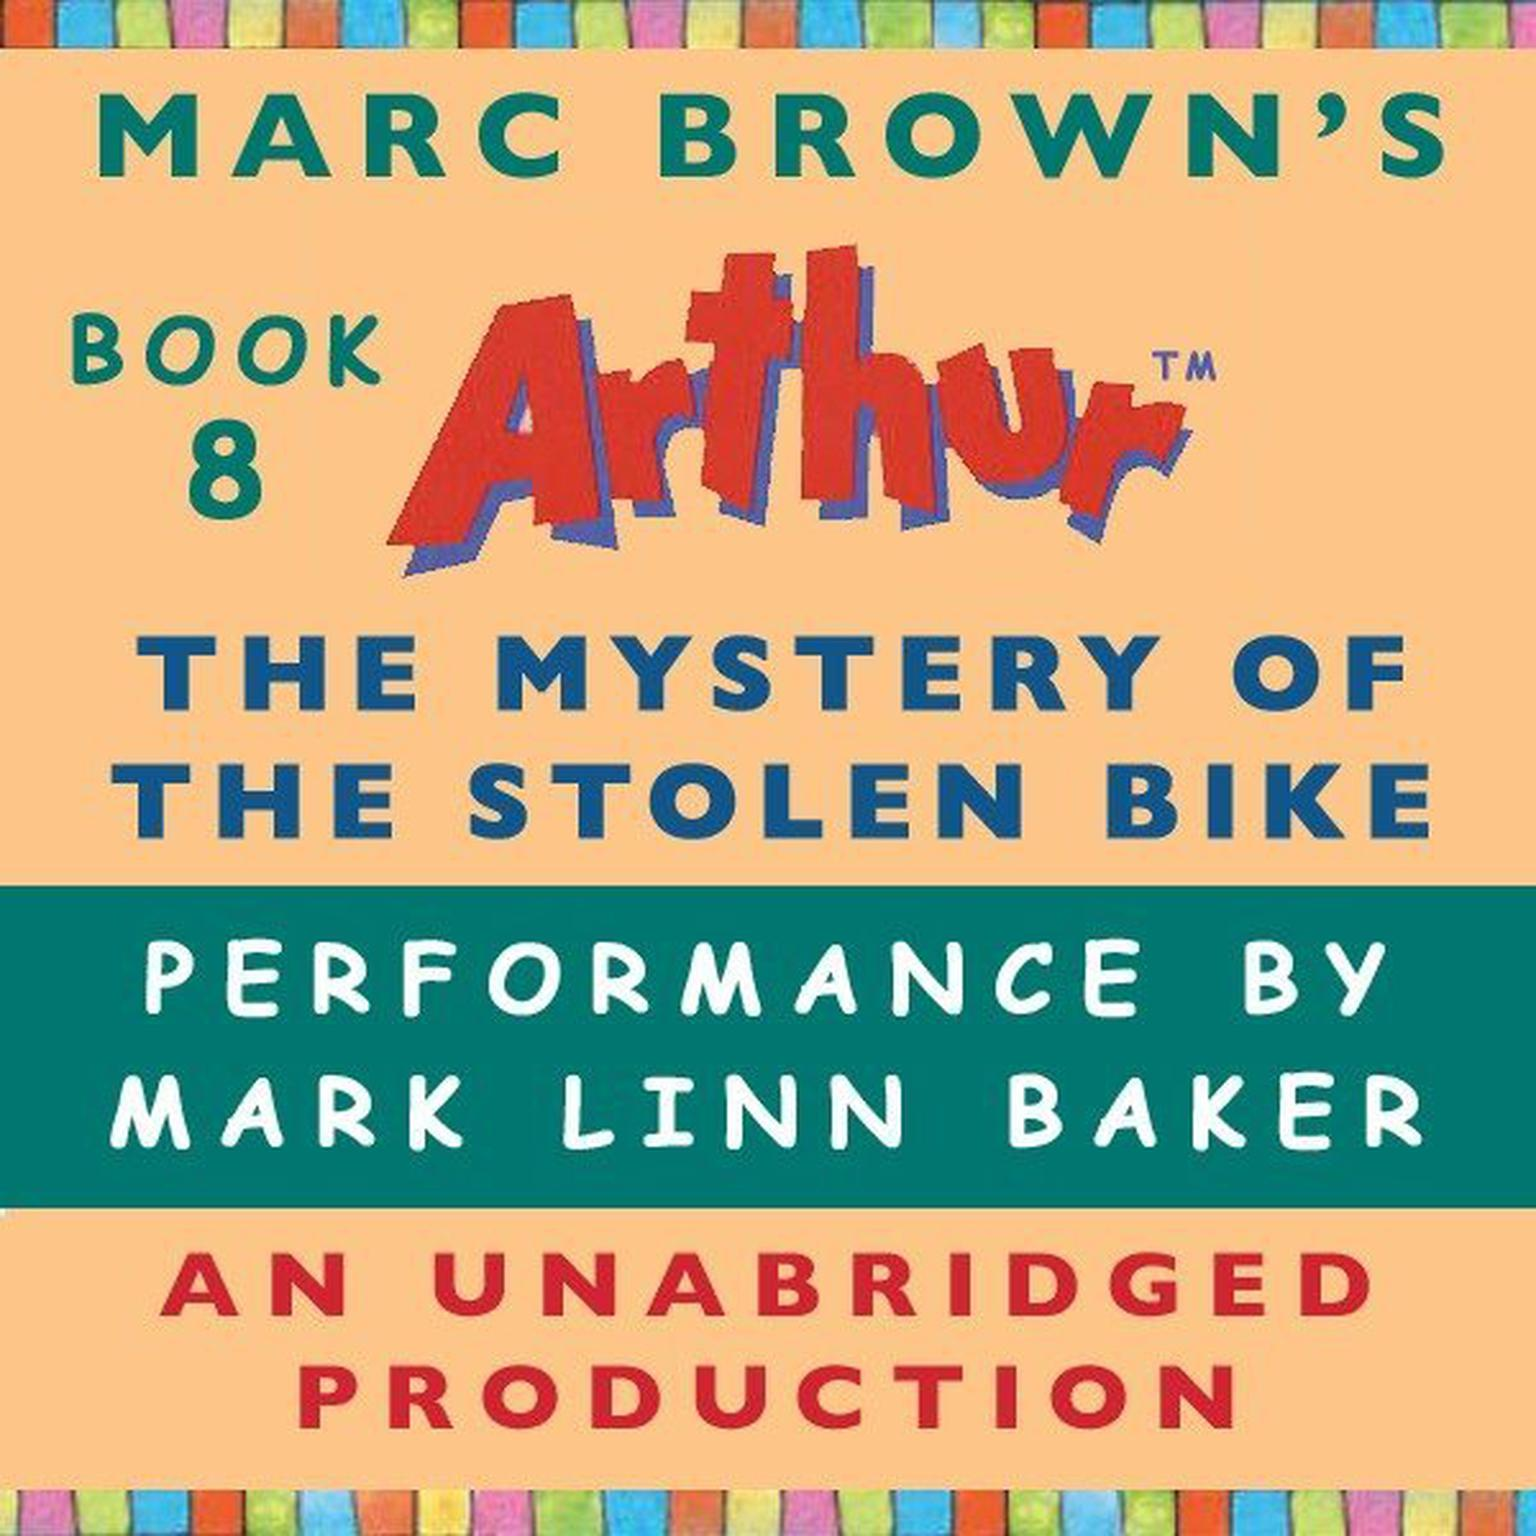 Printable The Mystery of the Stolen Bike: A Marc Brown Arthur Chapter Book #8 Audiobook Cover Art